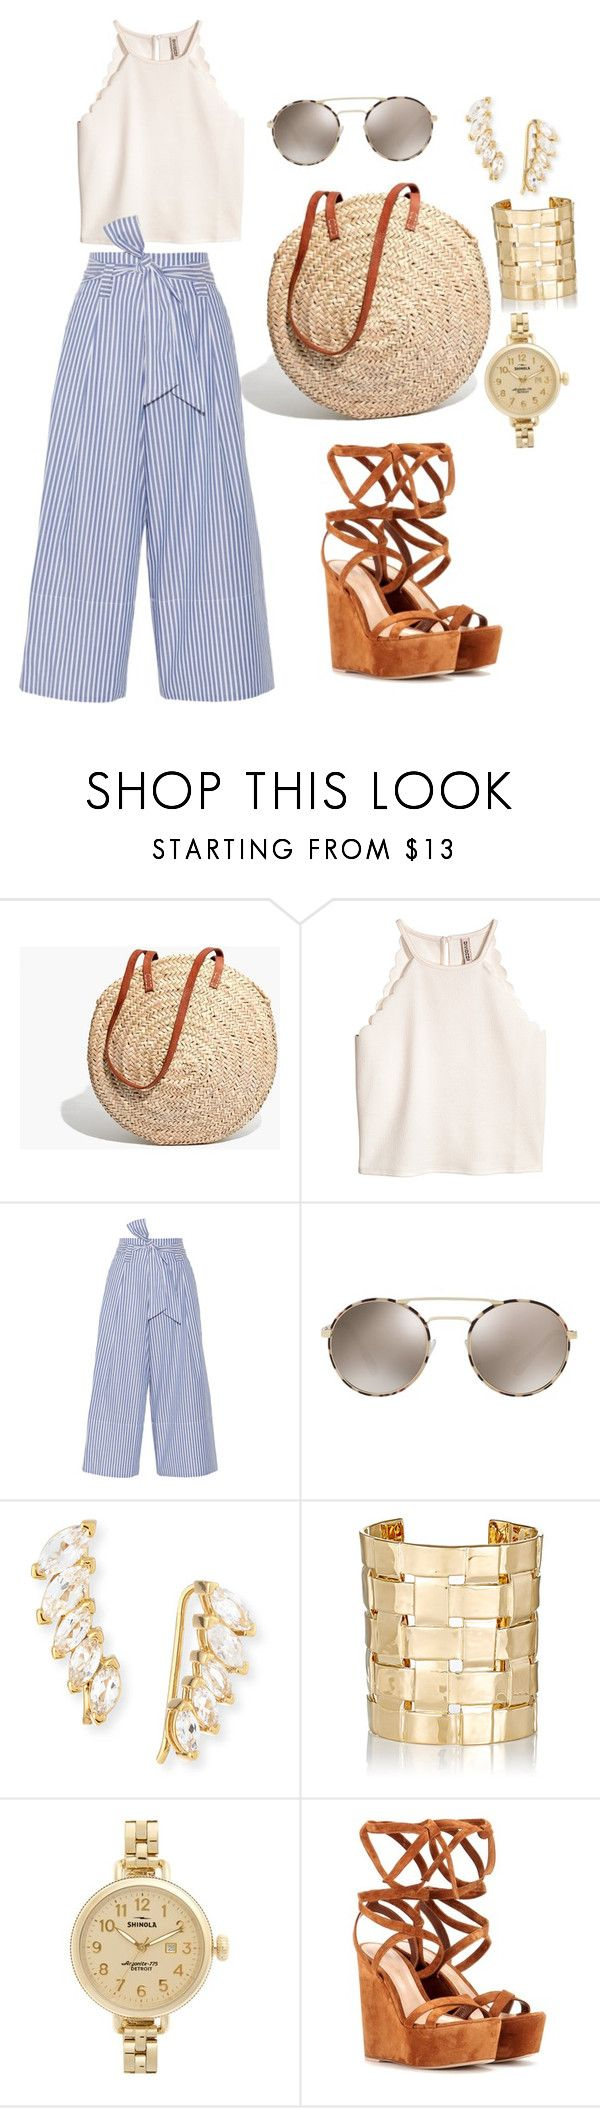 """""""My Arrival to the Hamptons"""" by design360 ❤ liked on Polyvore featuring Madewell, By Malene Birger, Prada, Jennifer Zeuner, Aurélie Bidermann, Shinola and Gianvito Rossi"""